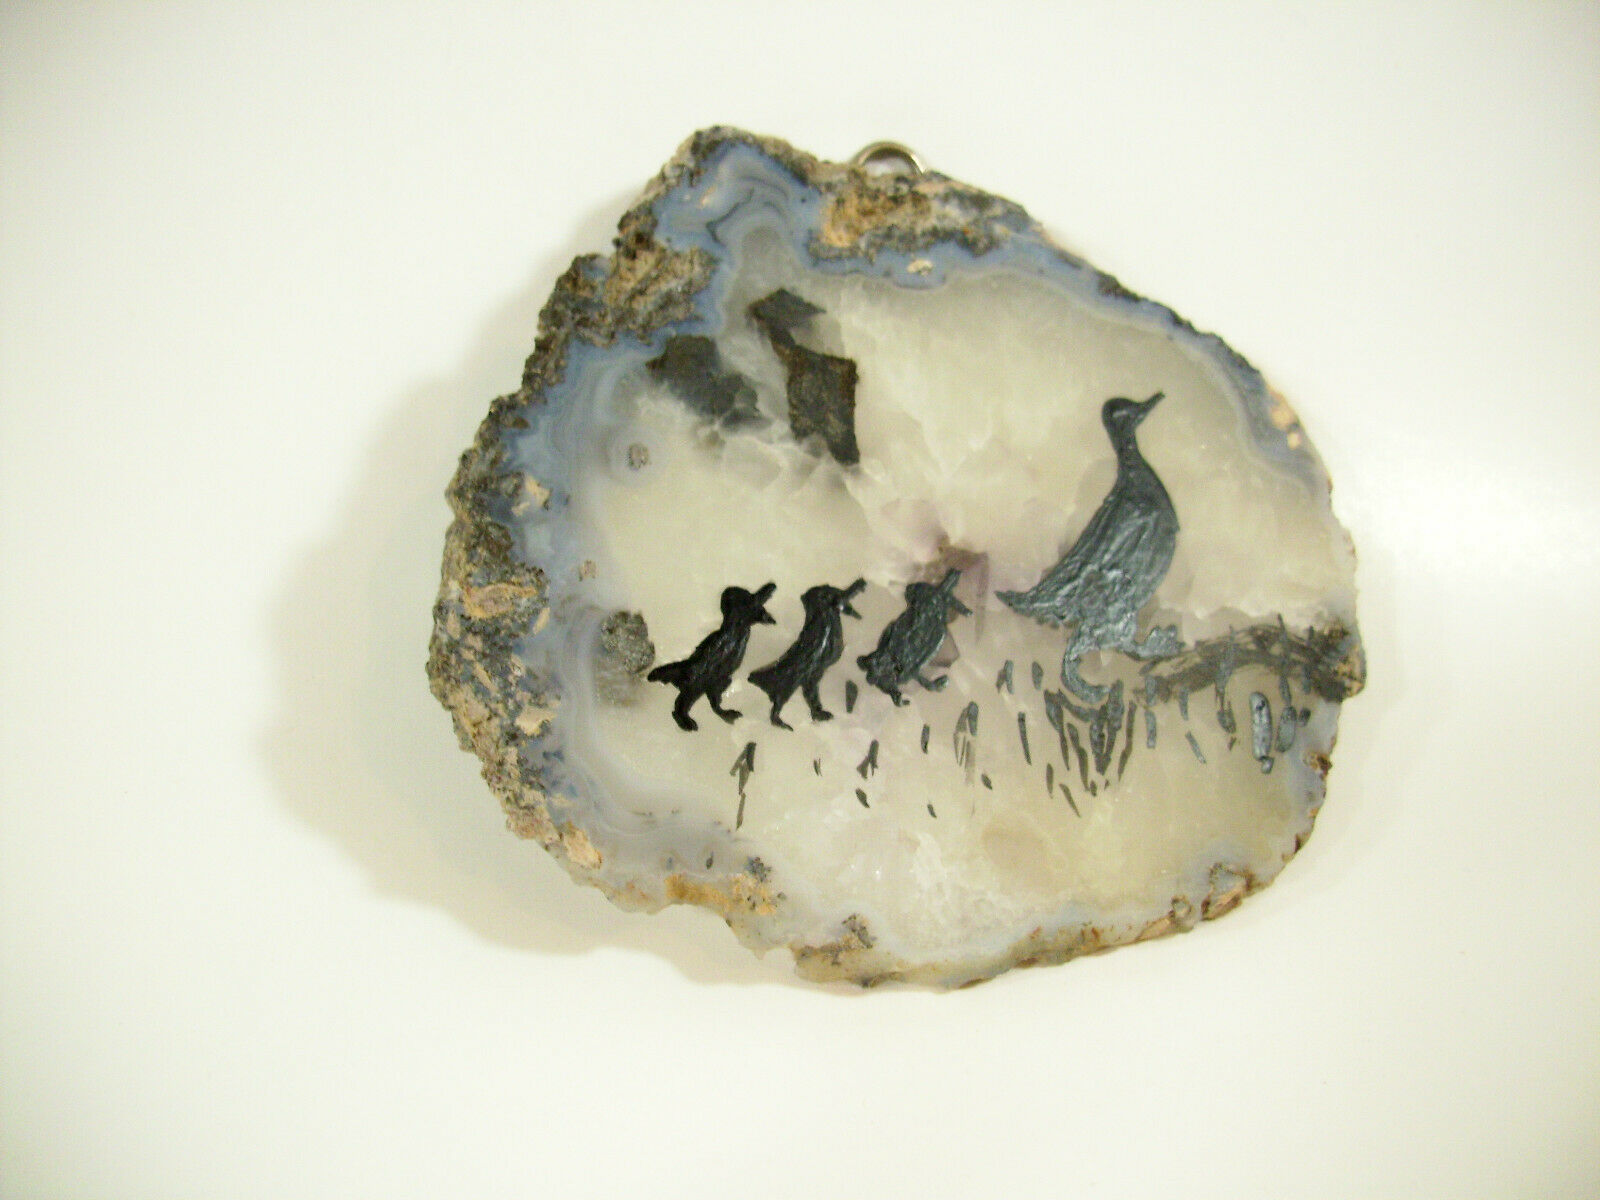 Silhouette Ducks Hand Painted on Geode Stone Slice Folk Art Wall Hanging Plaque image 2